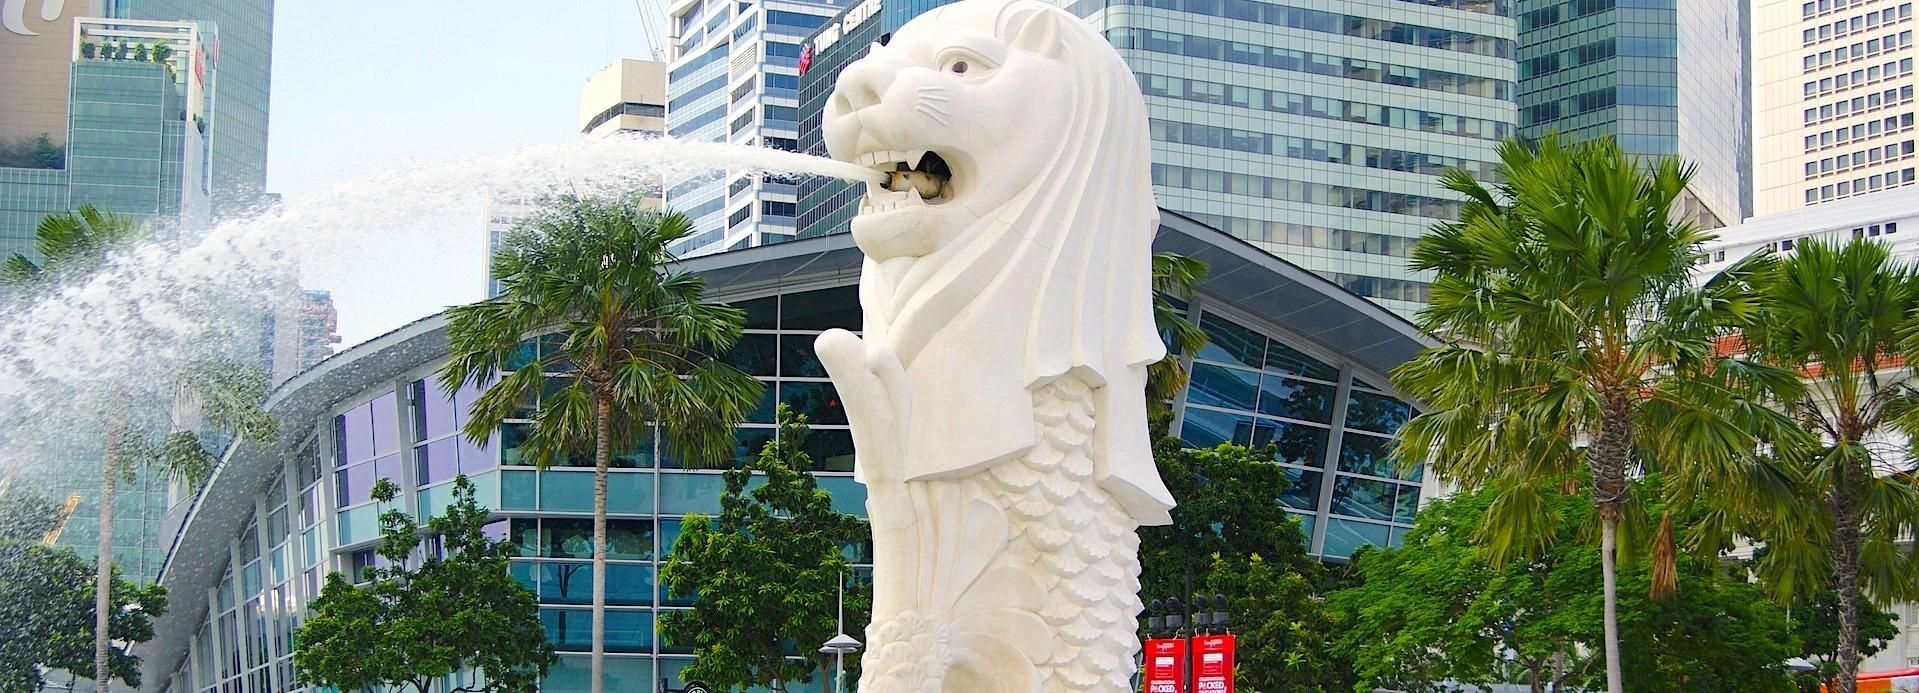 Singapore: Half-Day City Tour with Hotel Transfer